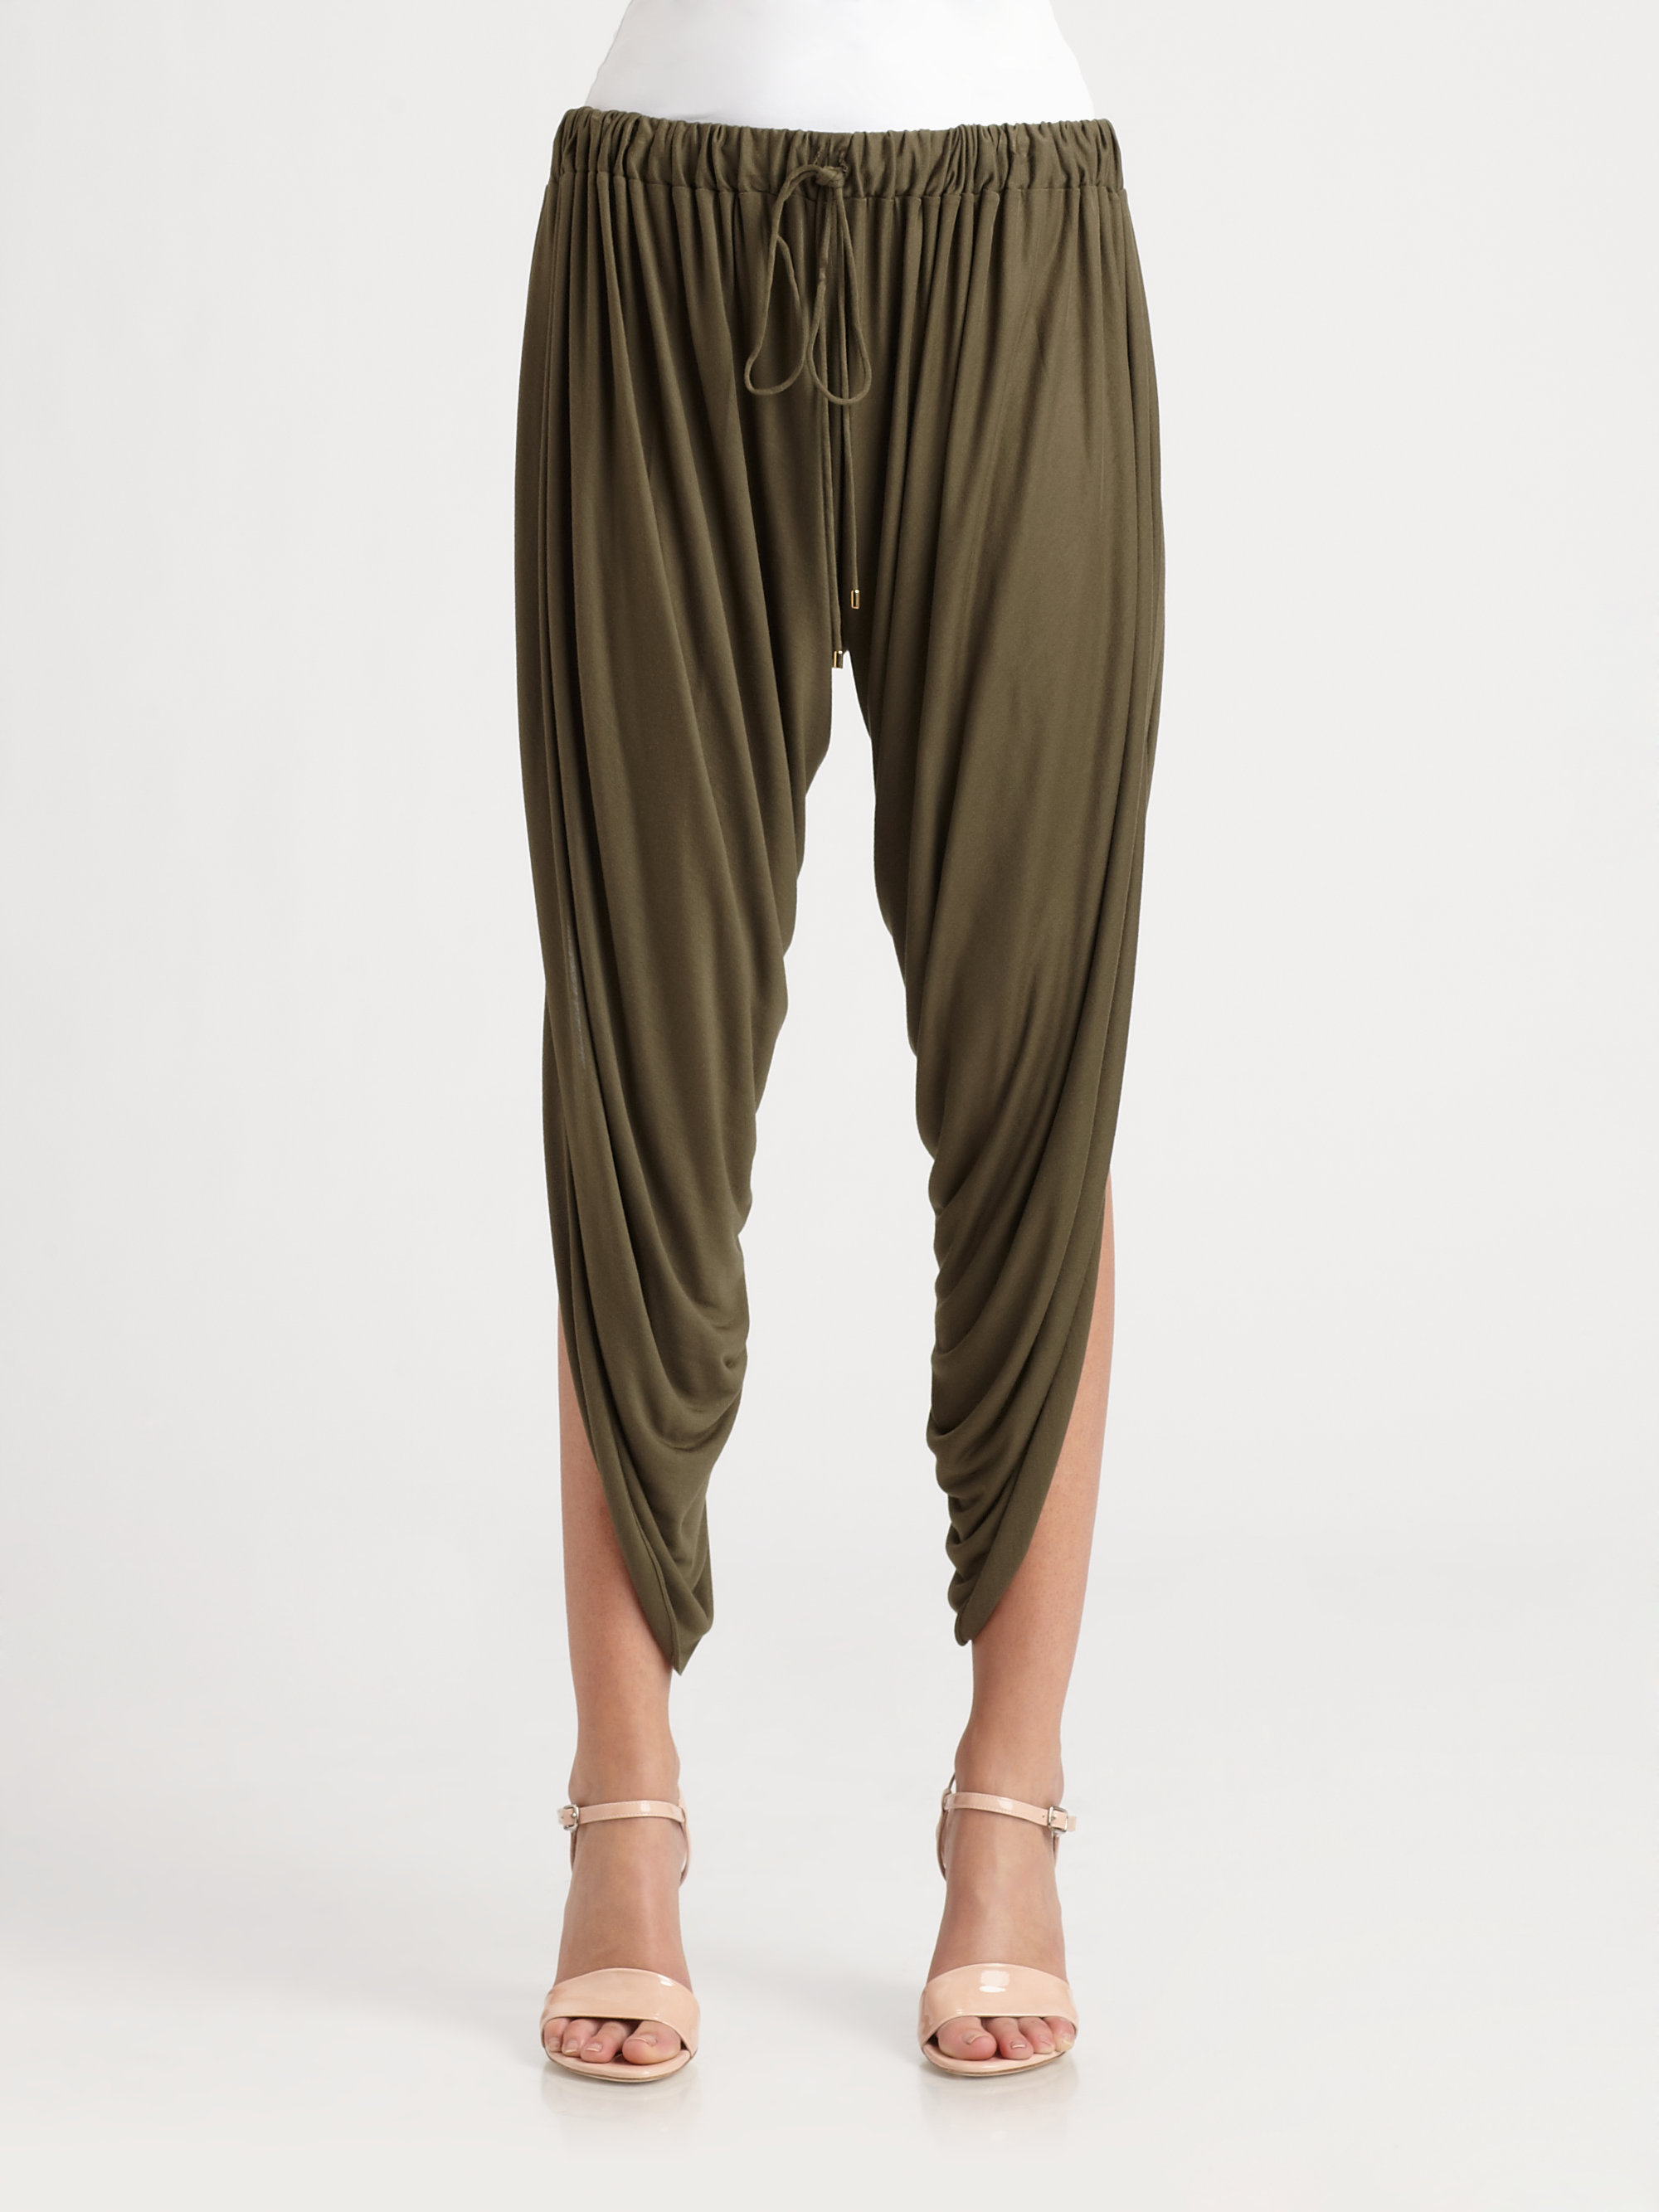 Haute Hippie cuts this bohemian-inspired pair of slouchy, draped pants from soft jersey. The relaxed legs are slit from the waist to the hem, with a small seam in the middle, and the gathered elastic waist is outfitted with a drawstring for an easy fit. Fabric: Soft jersey. % modal. Hand wash or.